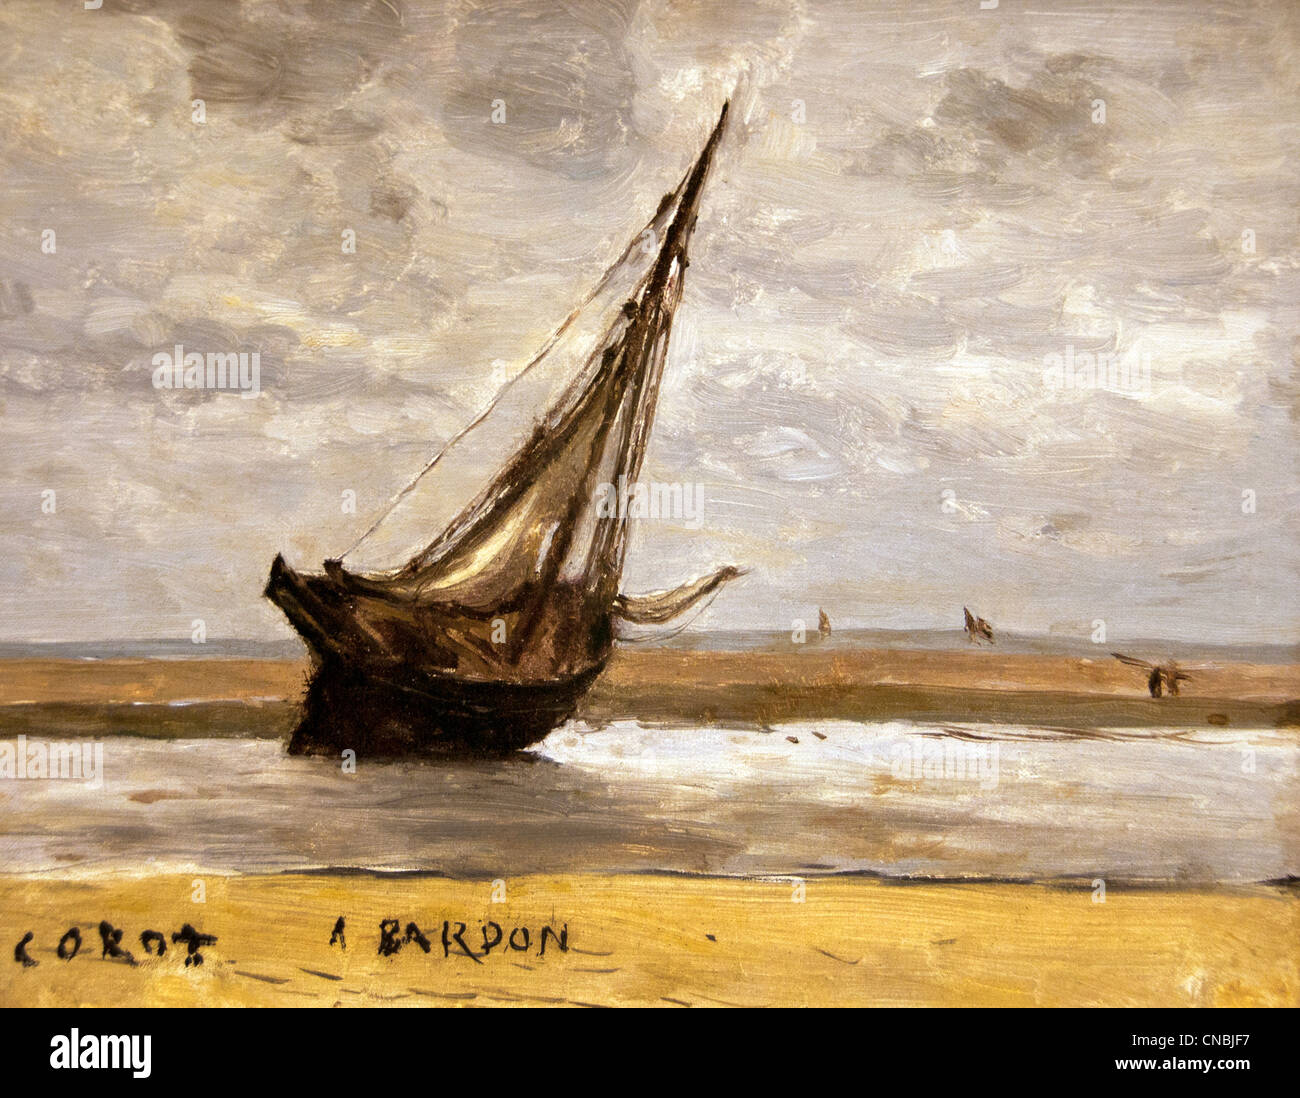 Trouville boat fishing boat aground at low tide 1830 - 1840 Jean Baptiste Camille Corot 1796-1875 France French - Stock Image